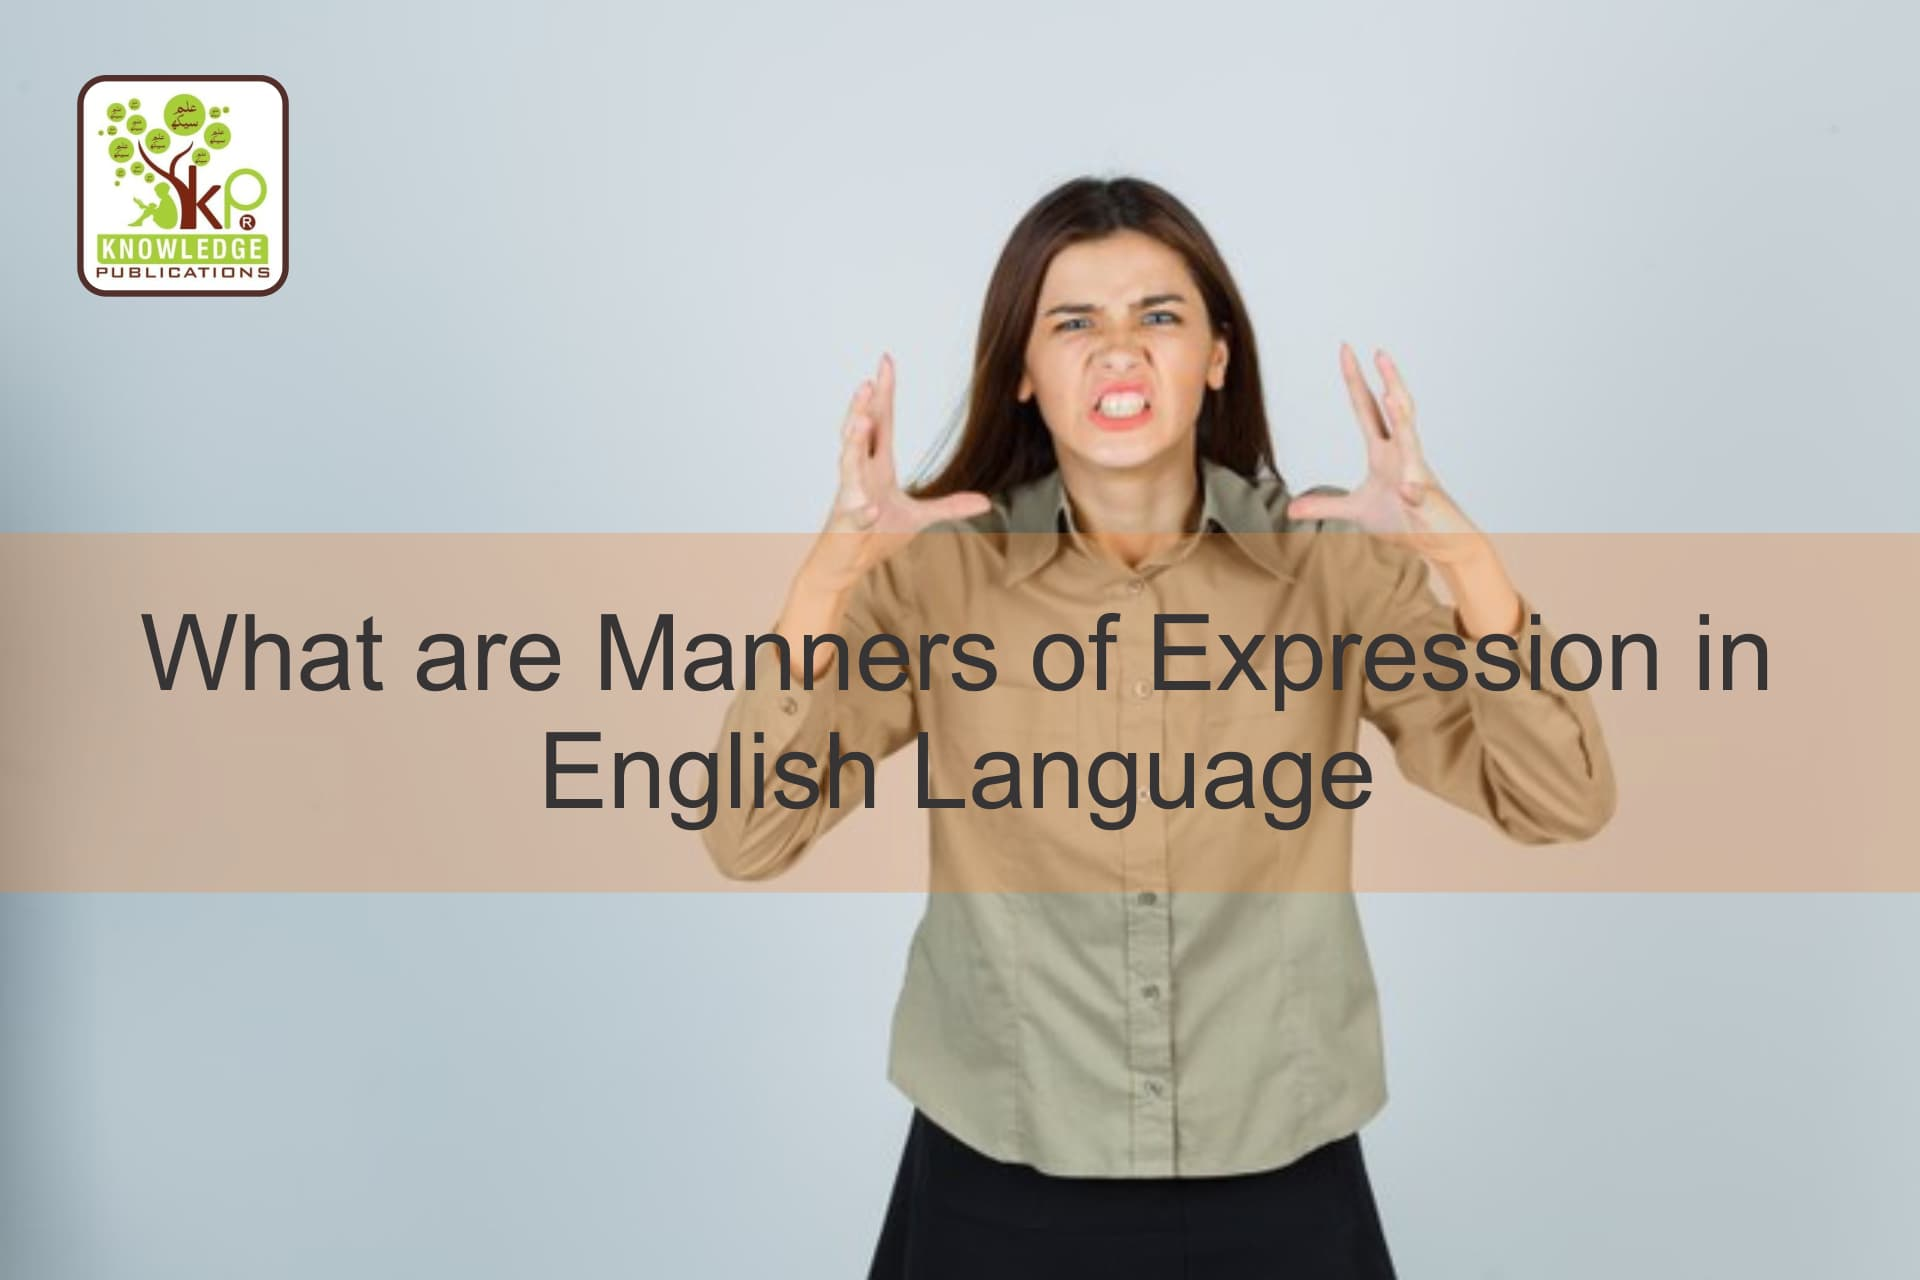 Manners of Expression, English Language, Spoken English, Talk English, Learn English